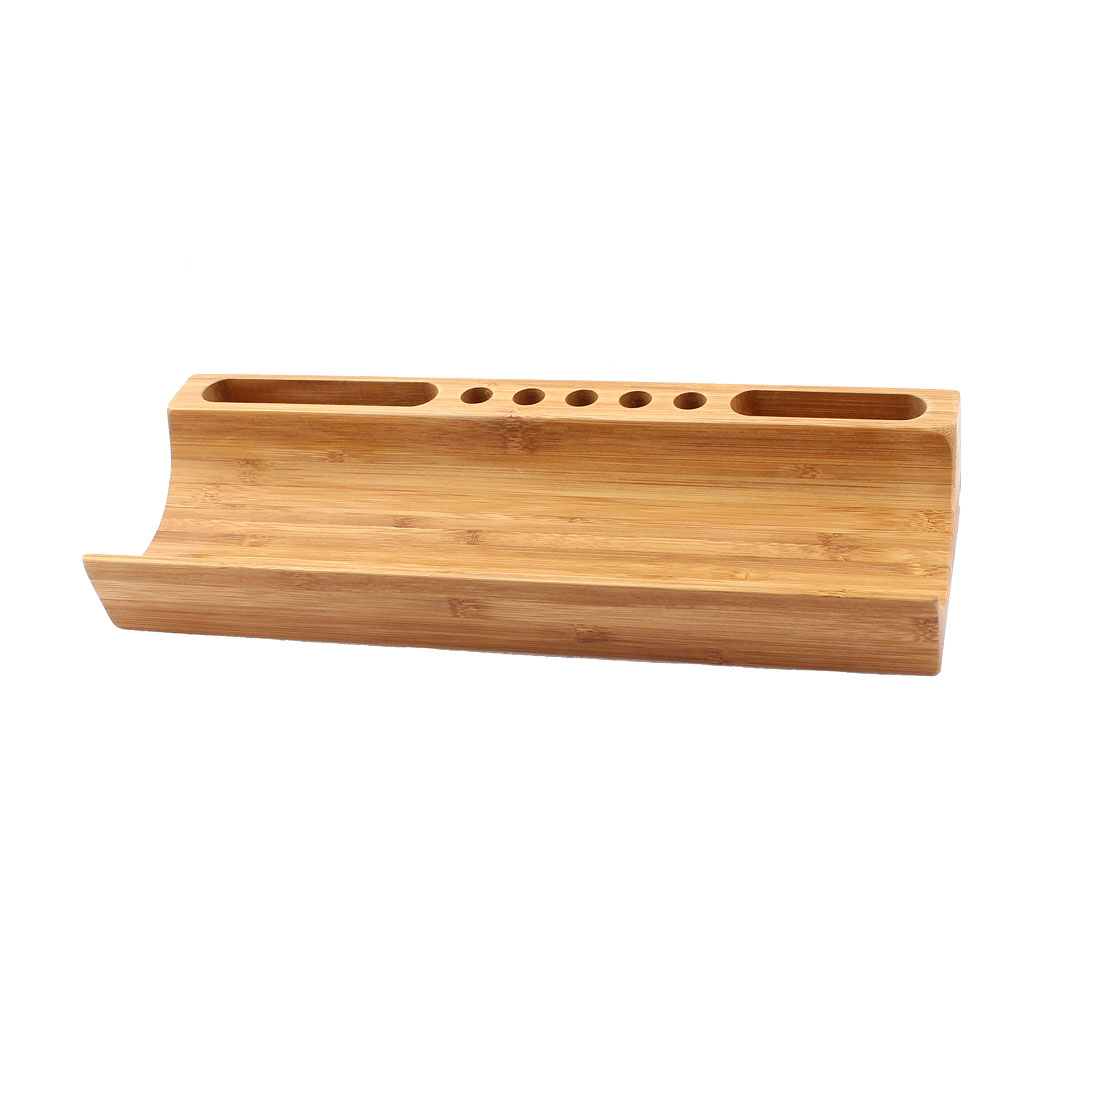 Stationery Cosmetic Makeup Storage Bamboo Desk Organizer Box Holder